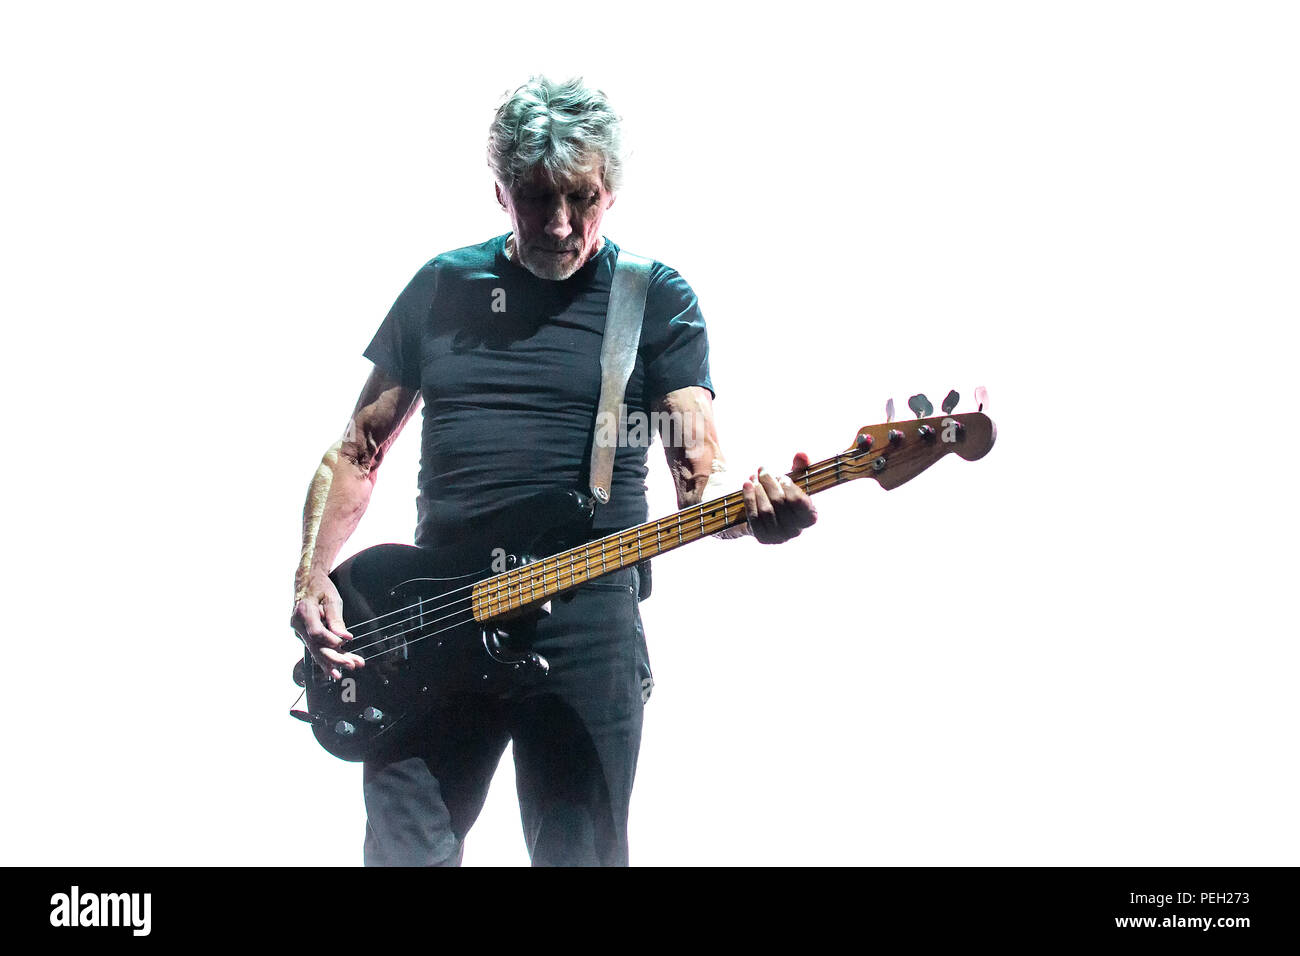 Norway, Oslo - August 14, 2018. The English singer, songwriter and musician Roger Waters performs a live concert at Telenor Arena in Oslo as part of the Us + Them Tour 2018. (Photo credit: Gonzales Photo - Terje Dokken) Credit: Gonzales Photo/Alamy Live News - Stock Image